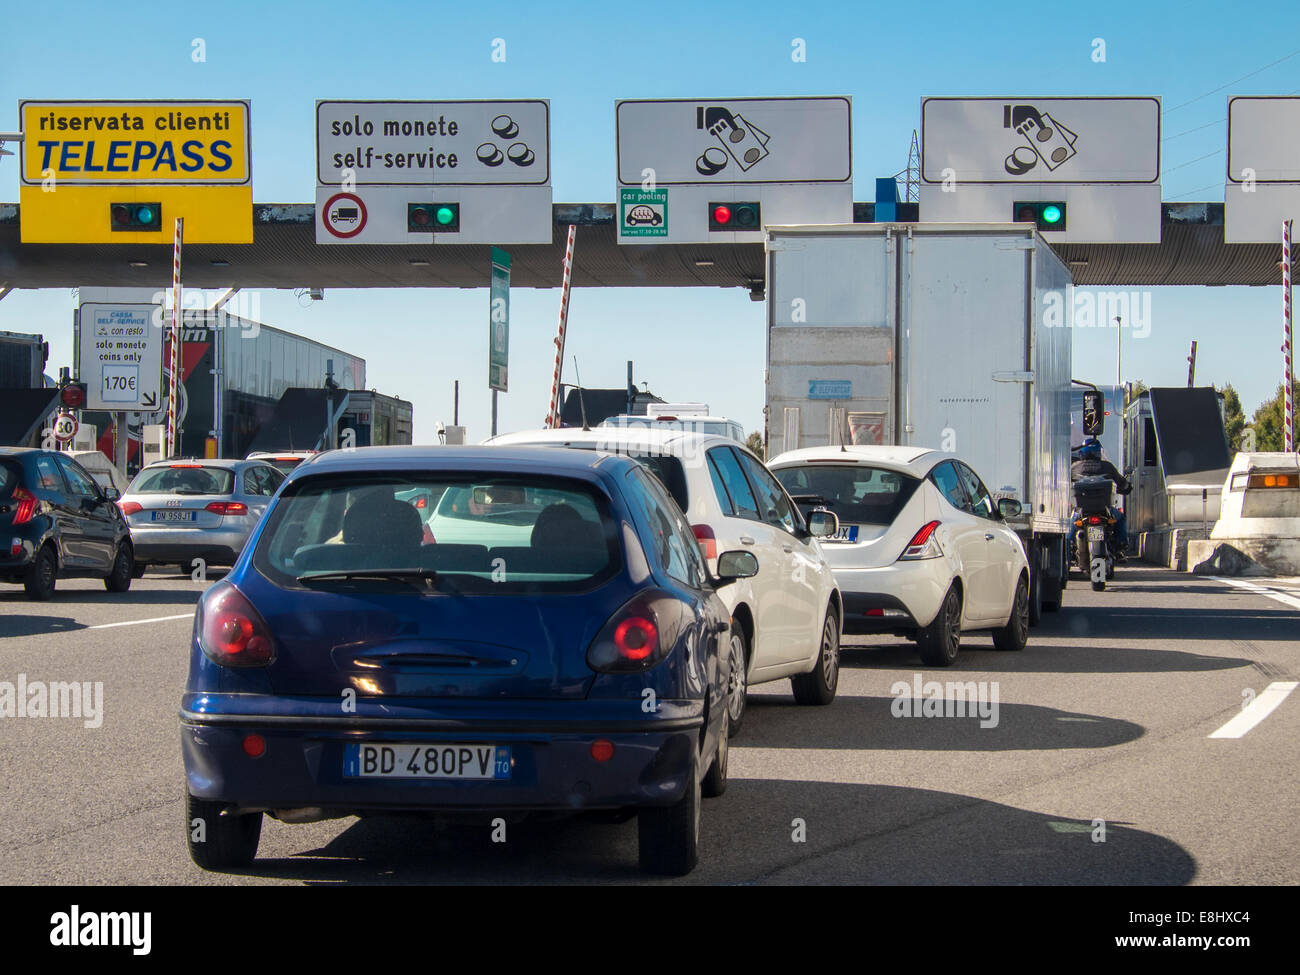 Vehicles queued at Italian autostrada toll booth - Stock Image